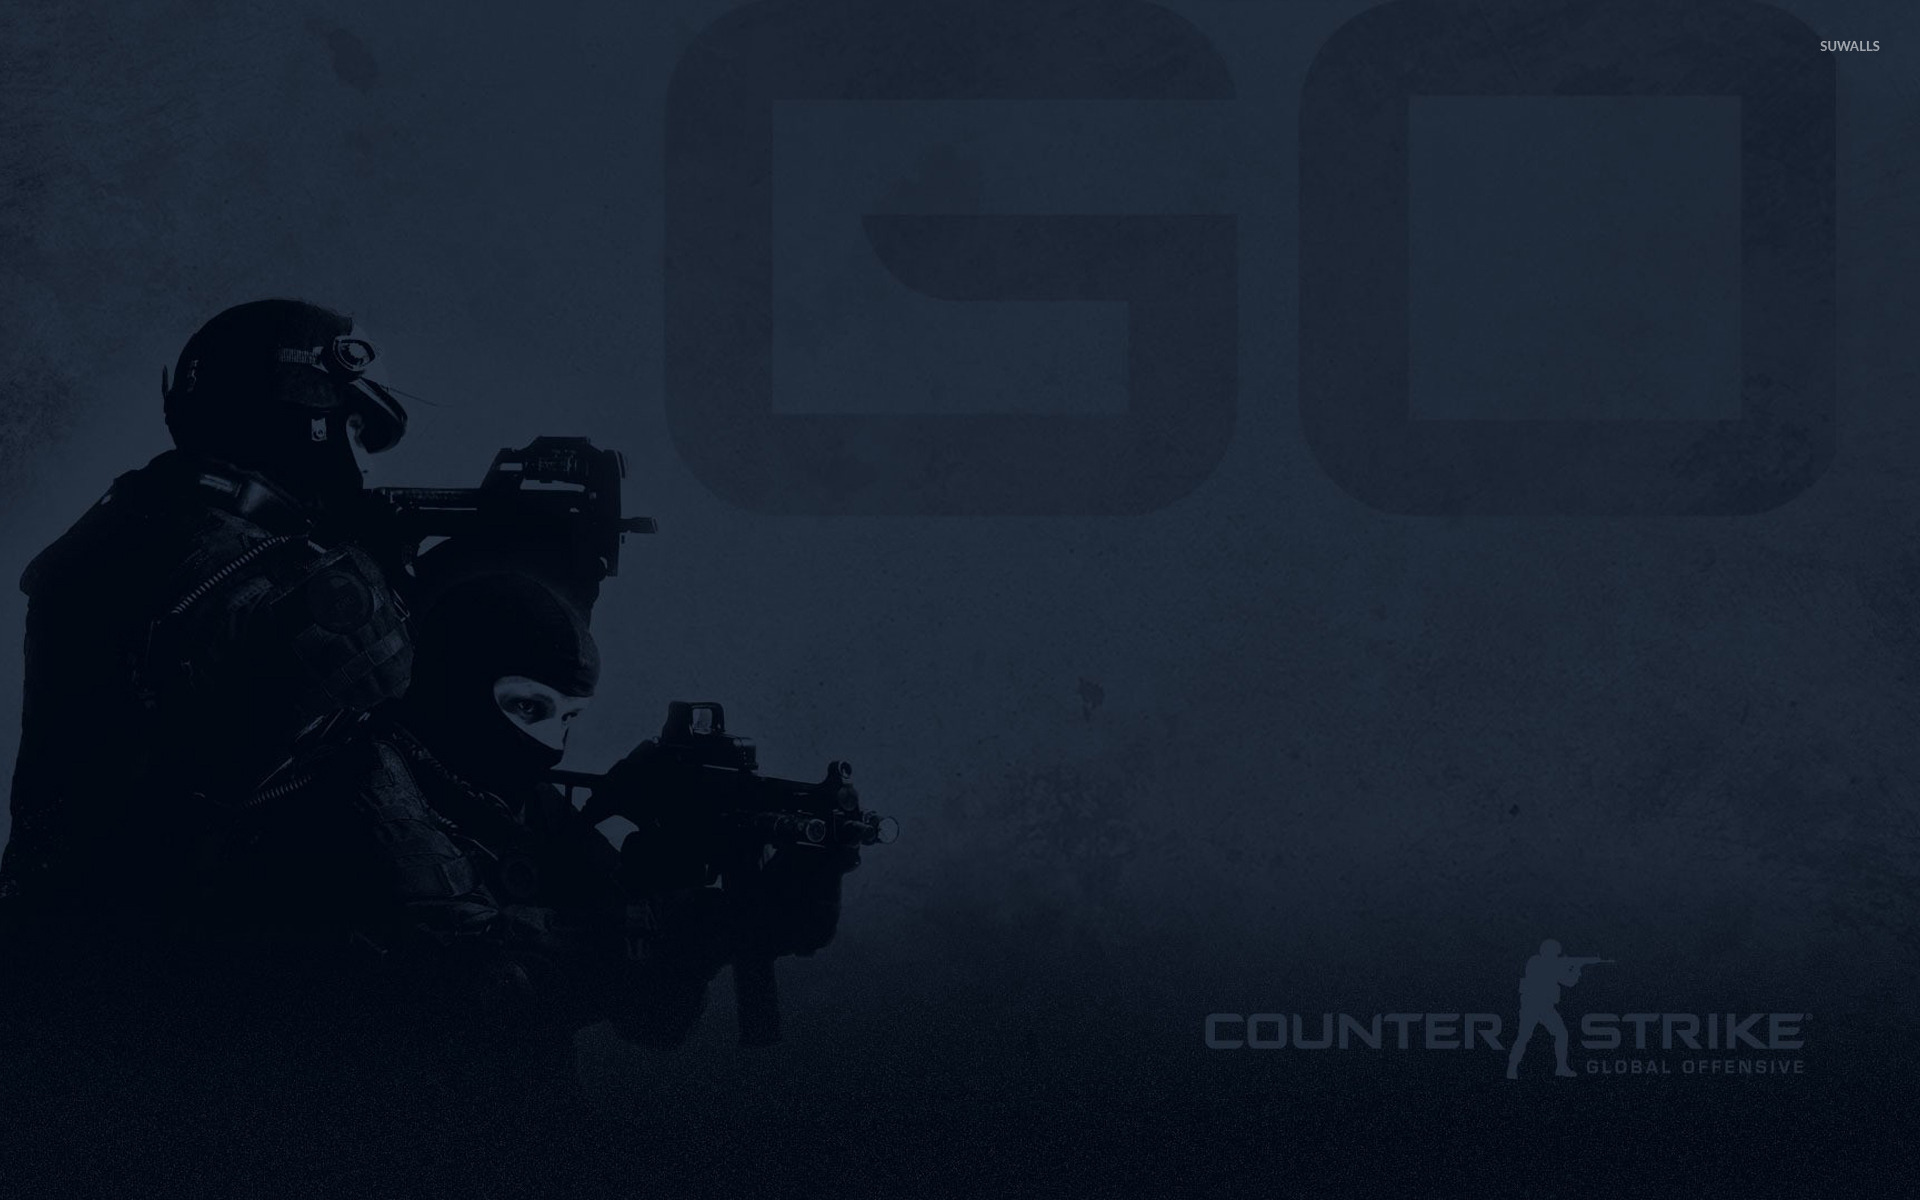 counter strike global offensive 7 wallpaper game